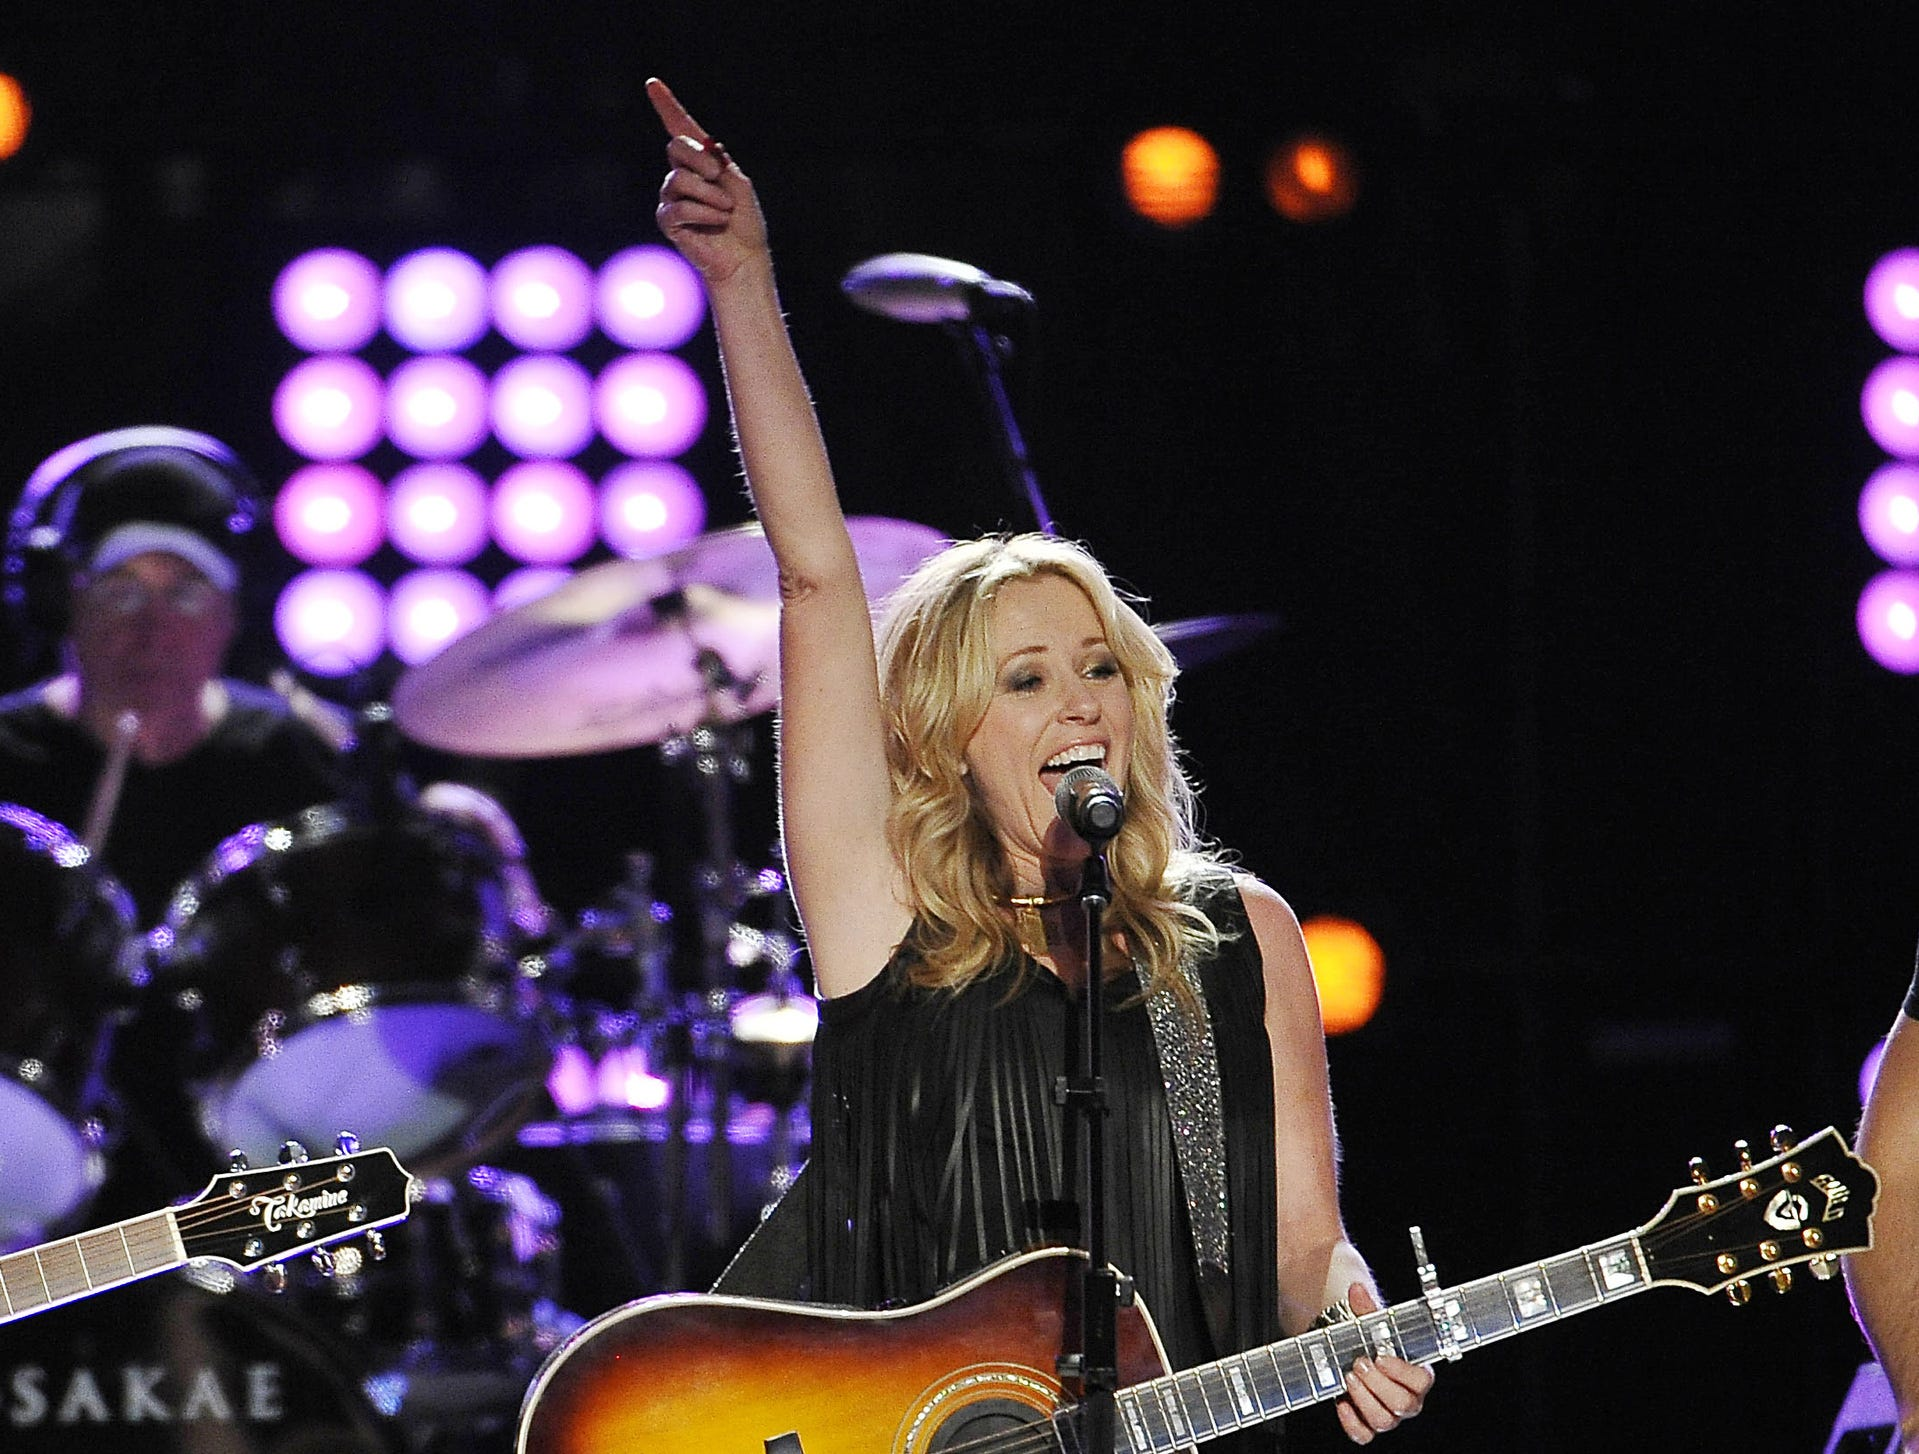 Deana Carter is scheduled to play the Budweiser Forever Country Stage at CMA Fest 2019.